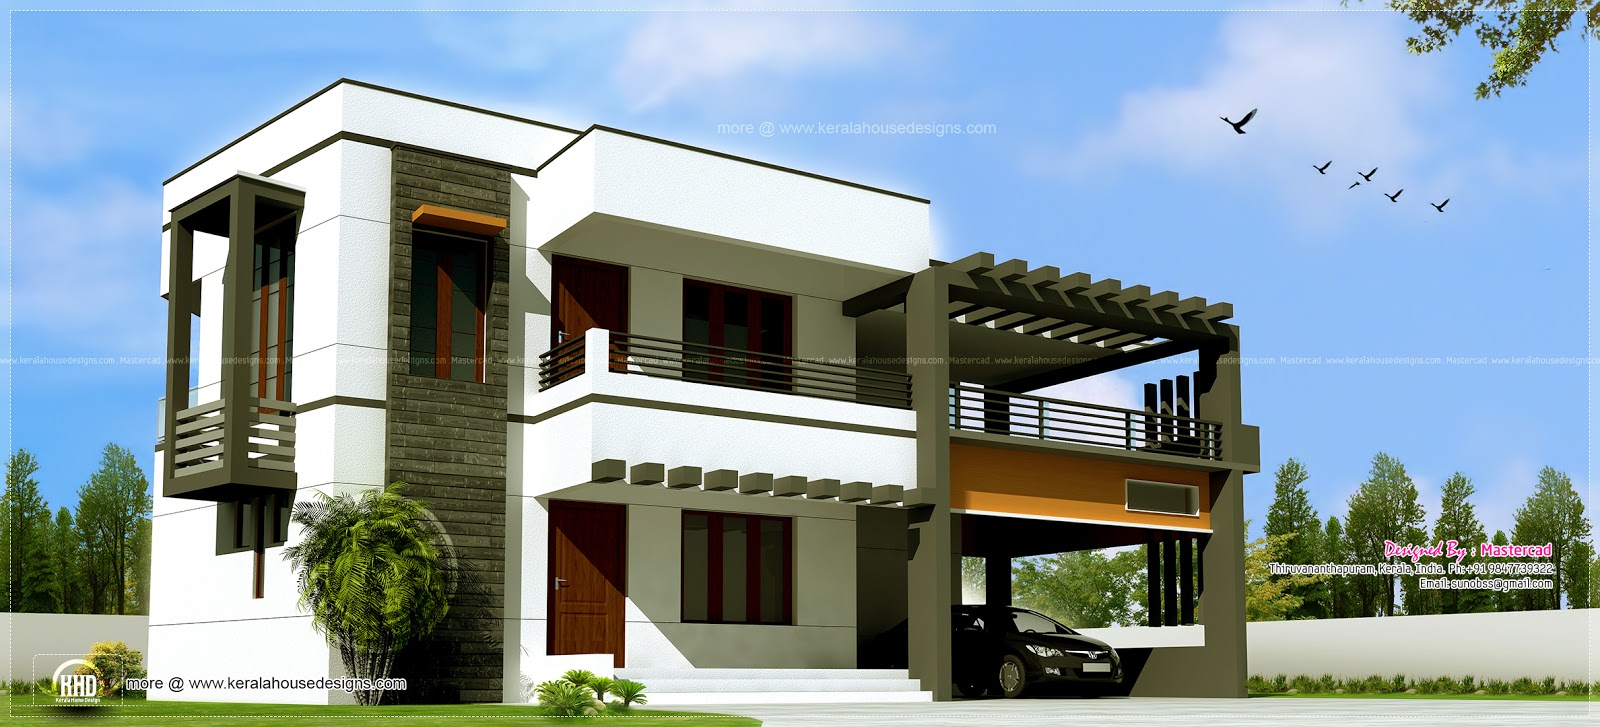 3012 contemporary house house design plans for 120 sqm modern house design